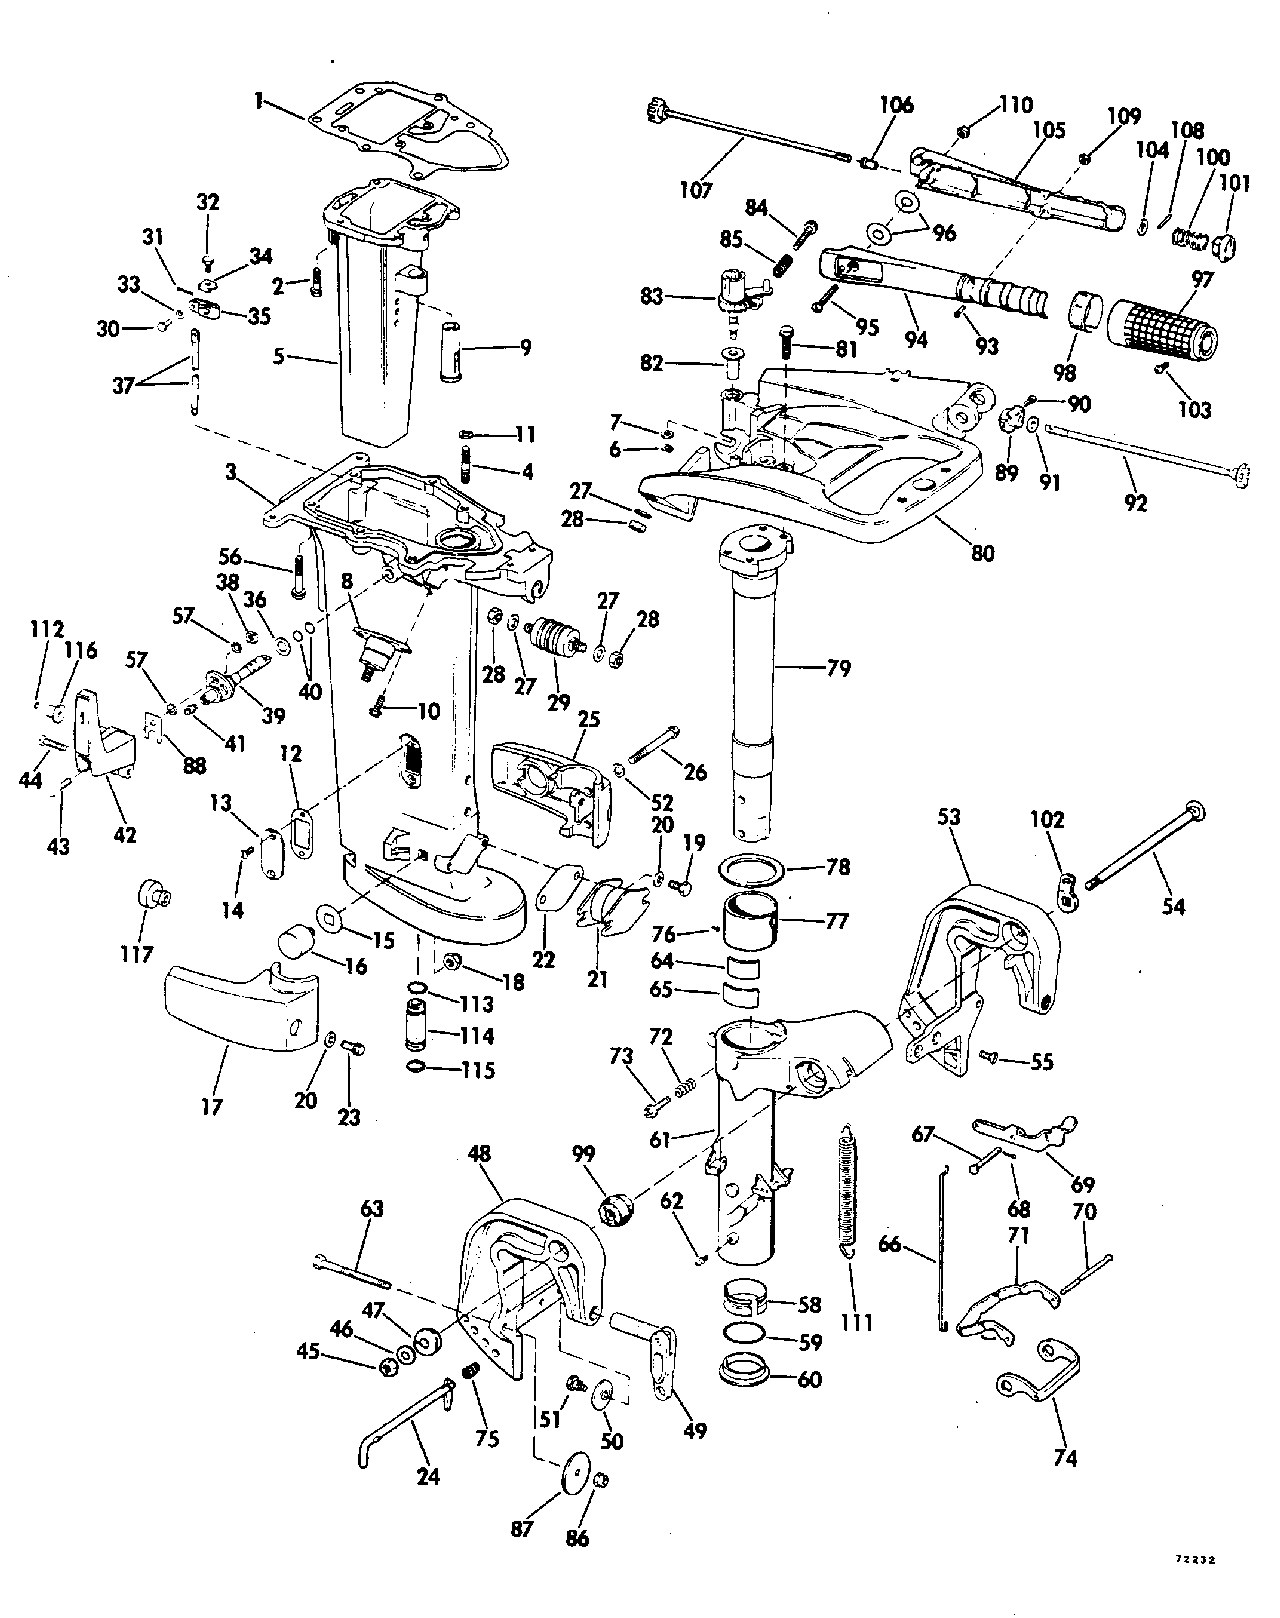 1977 Evinrude 35 Hp Diagram Detailed Schematics Wiring For A 1971 Mercury 115 Brp Johnson En 35el77h Exhaust Housing 25 50